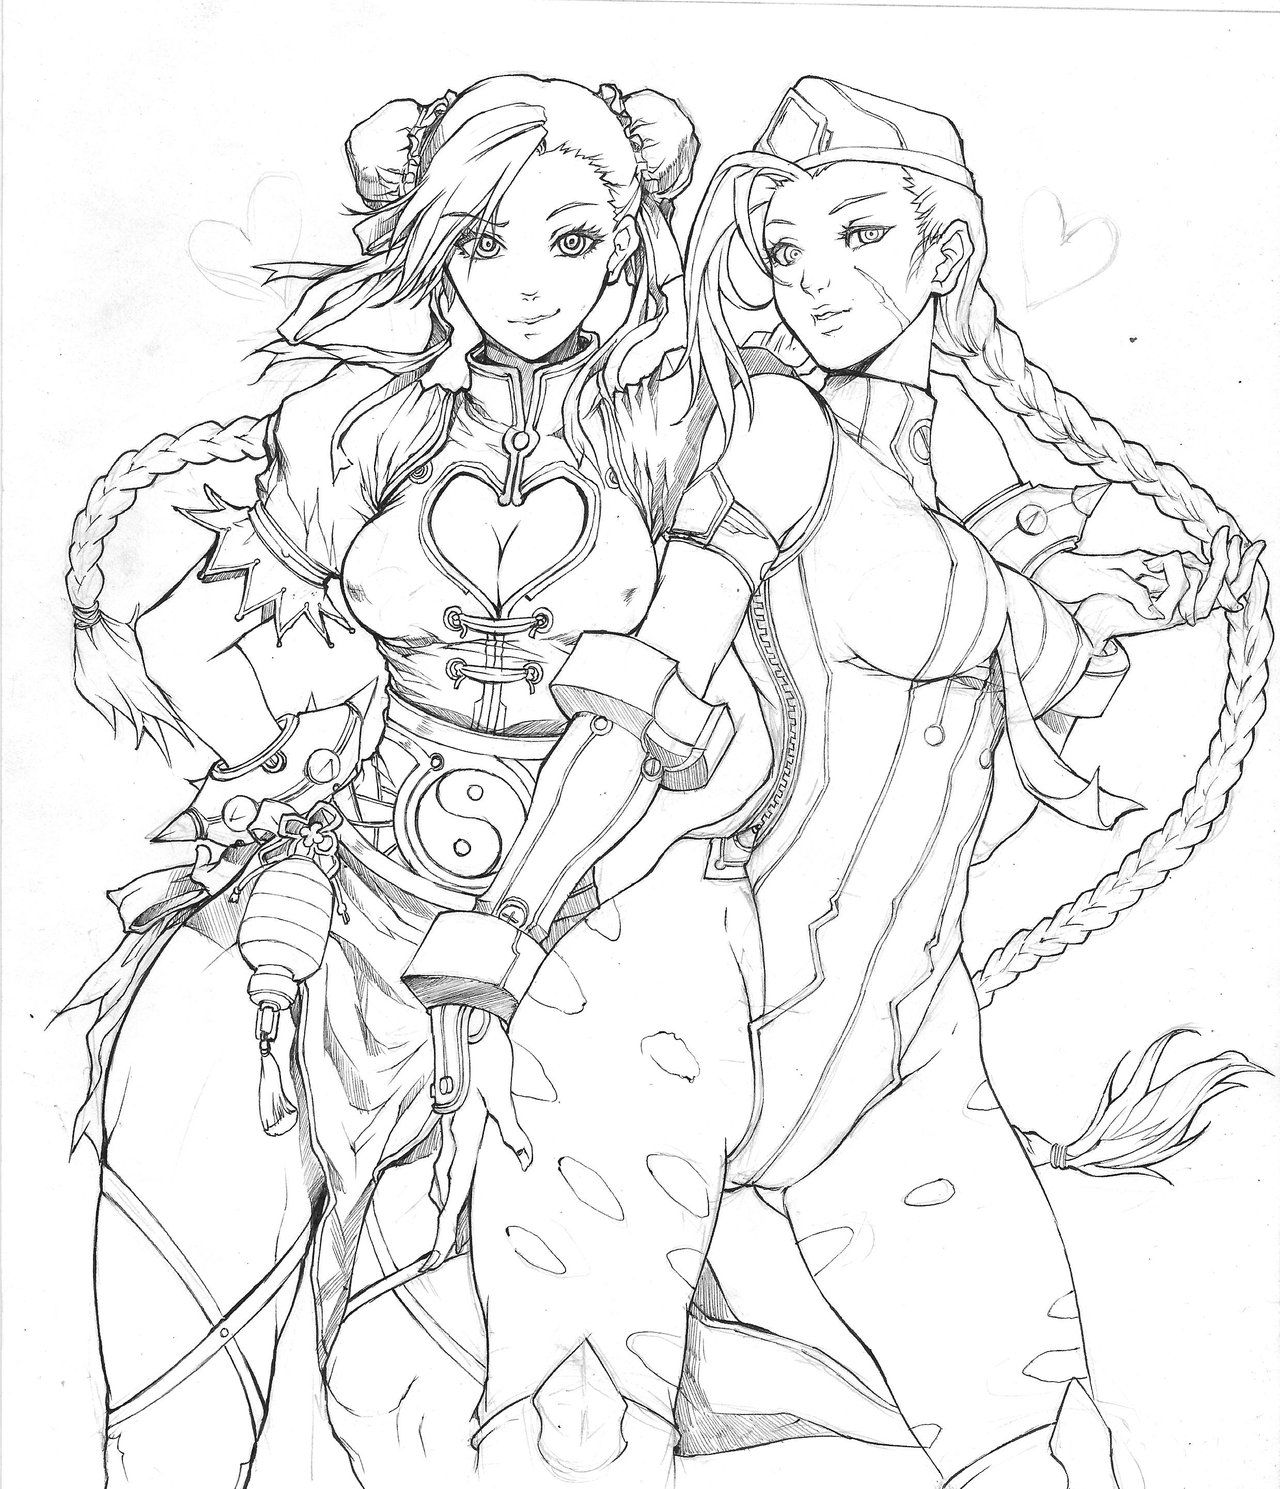 Chunli and Cammy lineart by KenshjnPark on deviantART